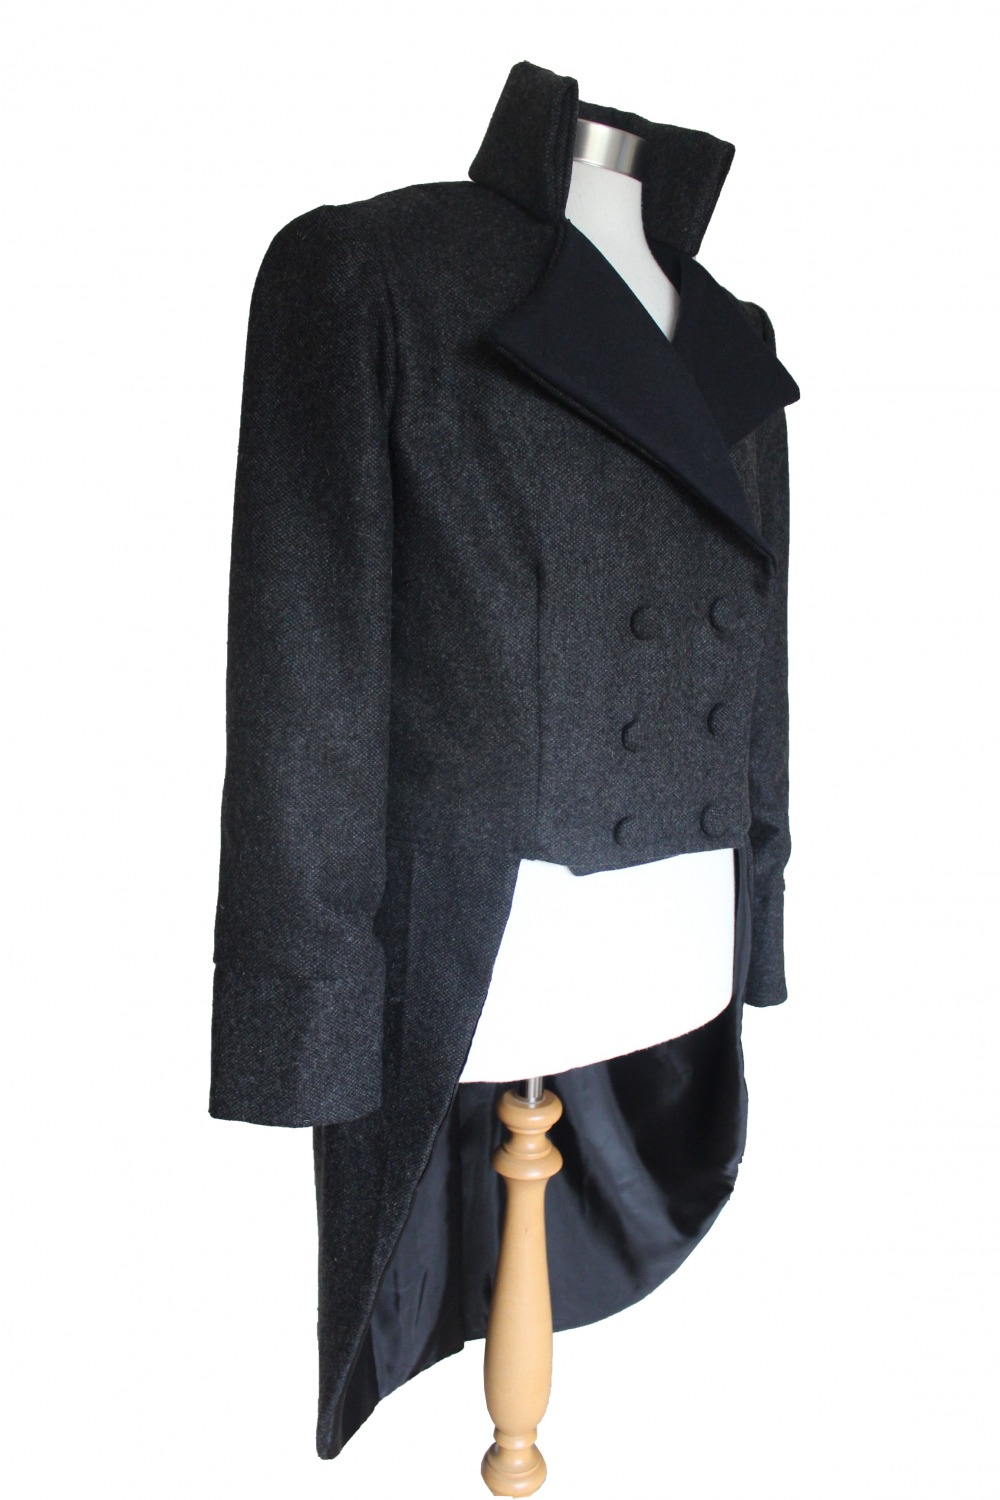 For Sale Men's Handmade Woolen Deluxe Mr.Darcy Regency Victorian Tailcoat Size Medium Ready To Go! Image